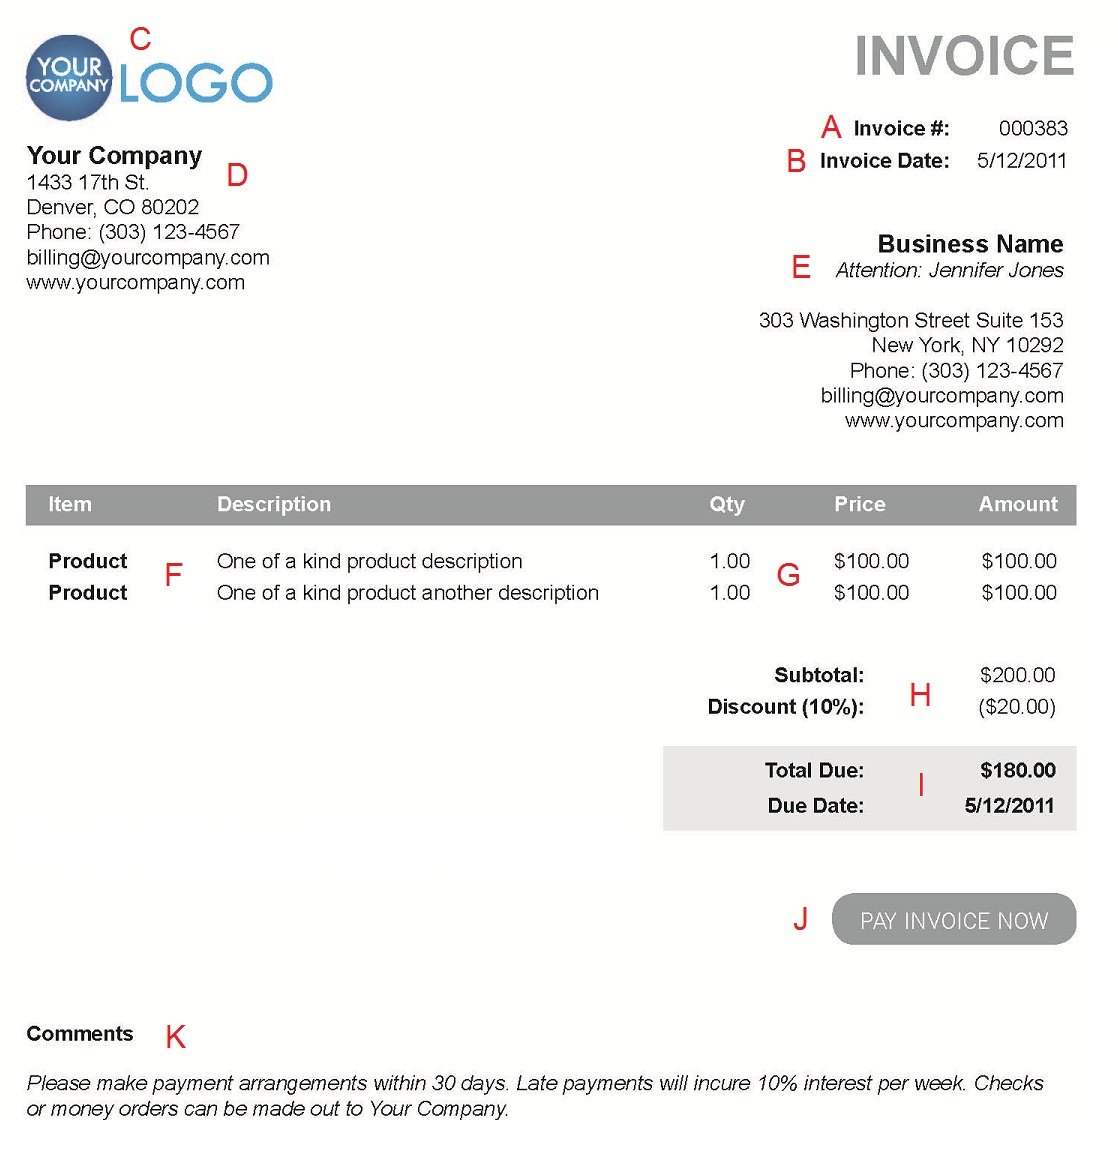 Pigbrotherus  Surprising The  Different Sections Of An Electronic Payment Invoice With Licious A  With Amusing Invoice Tracker App Also Uses Of Invoice In Addition Ups Invoice Guide And Performa Invoice Meaning As Well As Free Invoice Template For Mac Additionally Stripe Invoicing From Paysimplecom With Pigbrotherus  Licious The  Different Sections Of An Electronic Payment Invoice With Amusing A  And Surprising Invoice Tracker App Also Uses Of Invoice In Addition Ups Invoice Guide From Paysimplecom